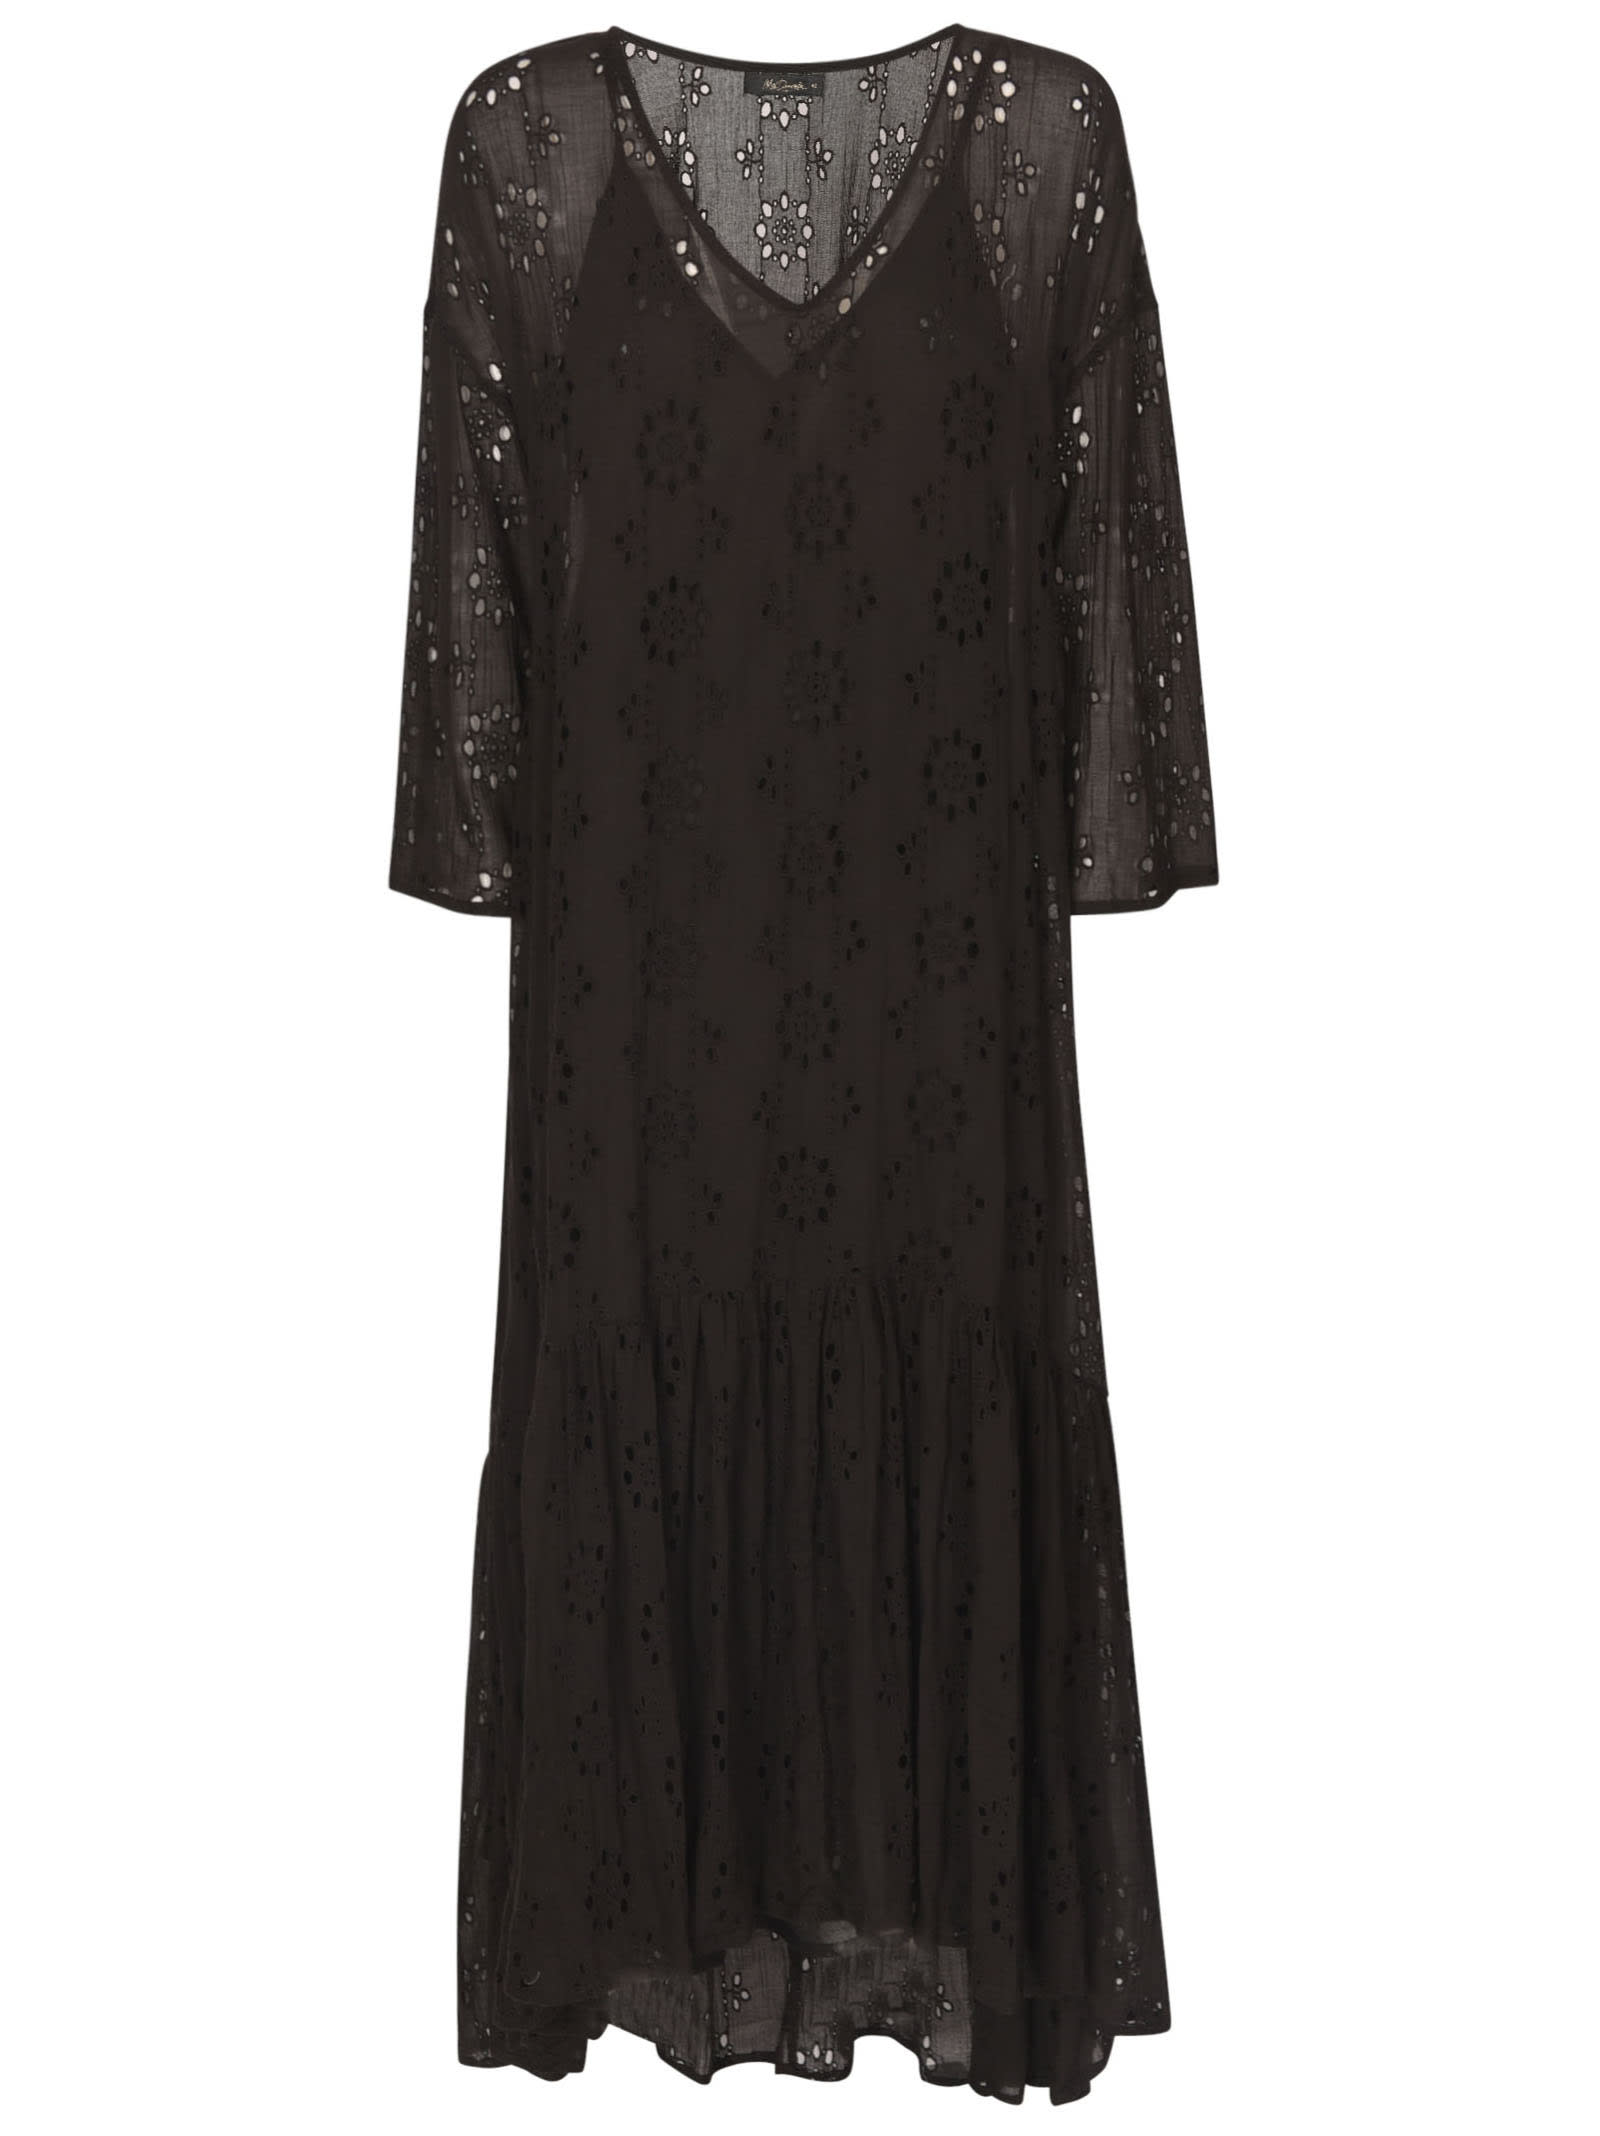 Mes Demoiselles Perforated Lace Paneled Dress